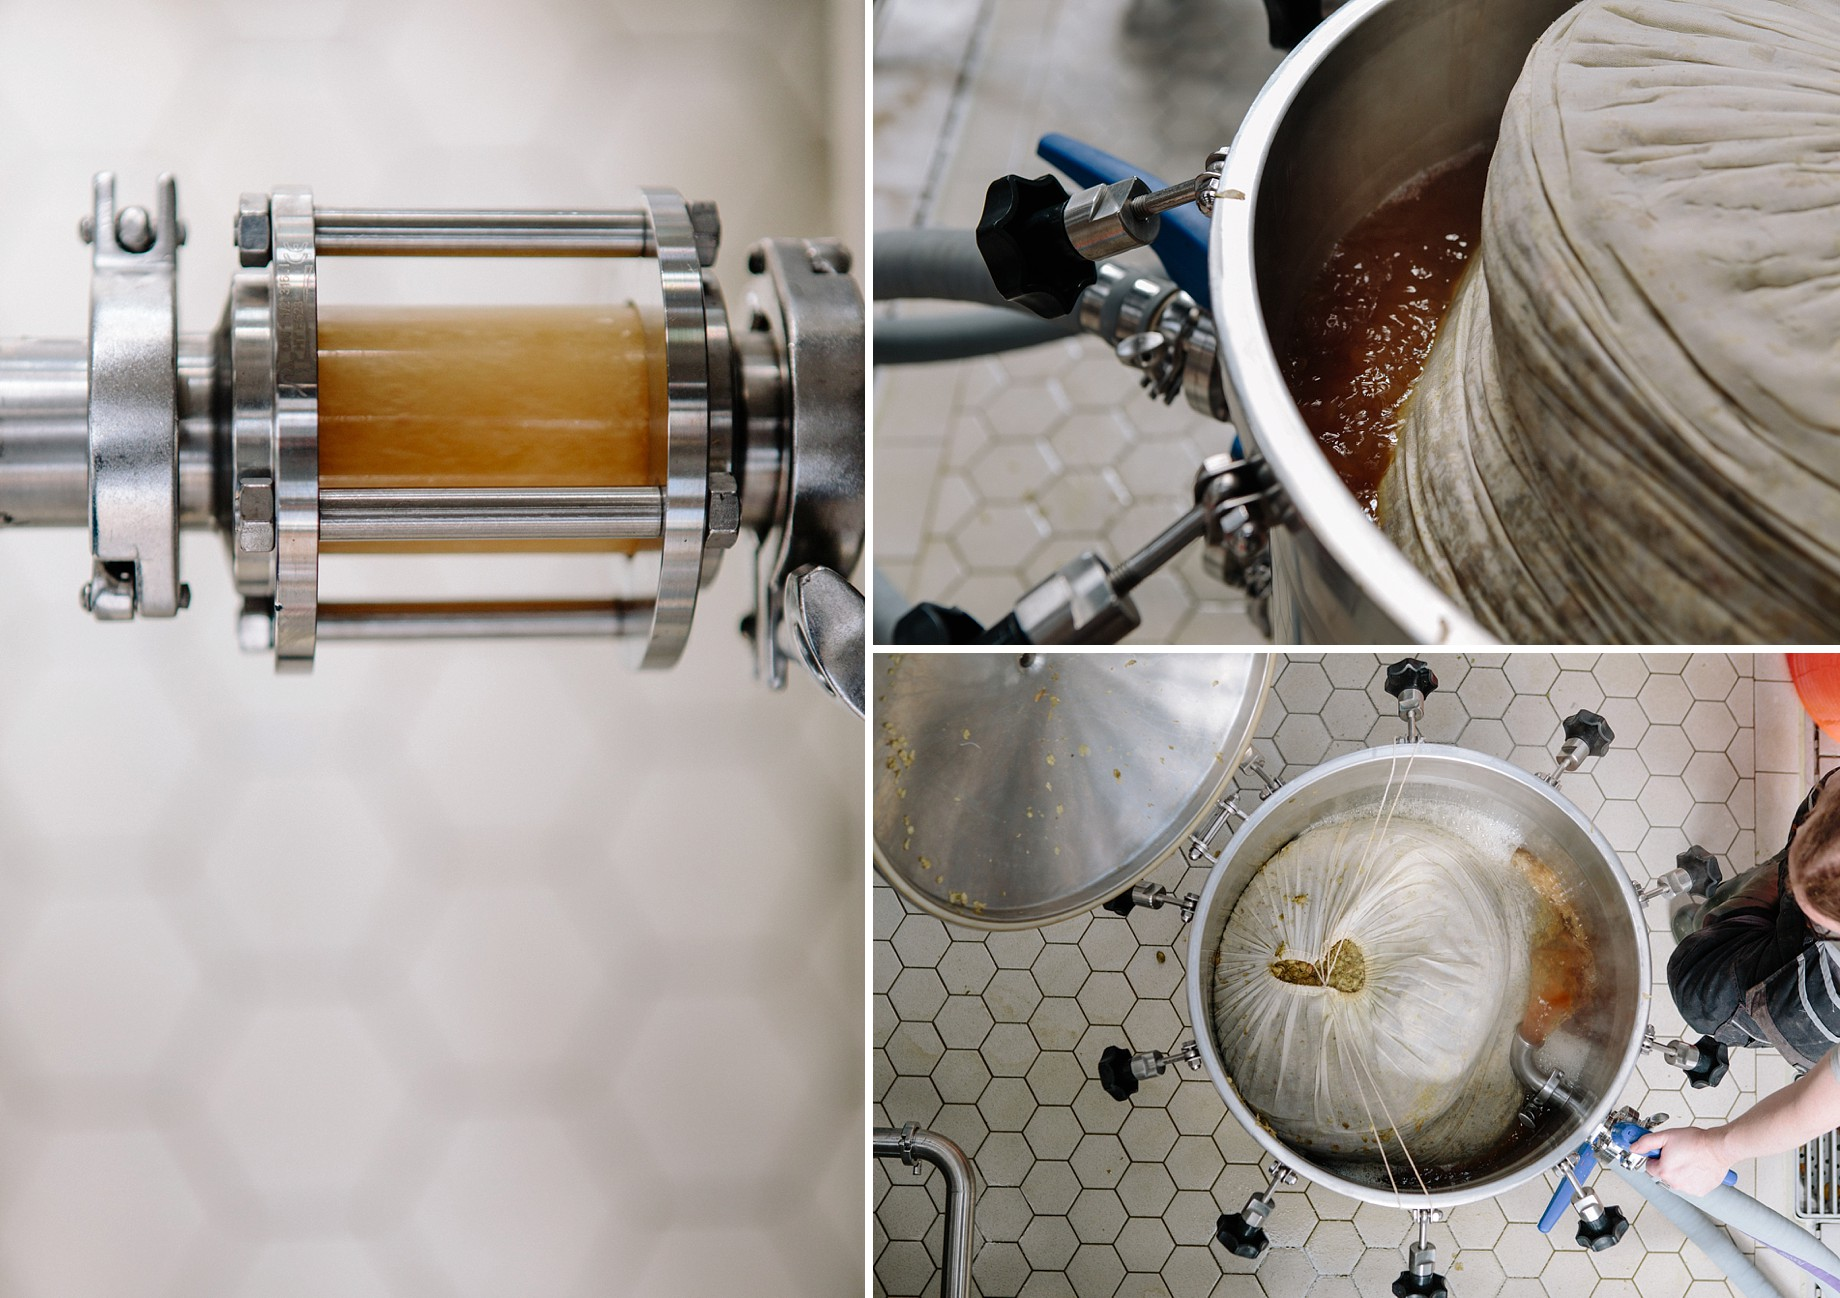 Cloudwater_brew_Co_019_hops_mark_newton_photography.JPG